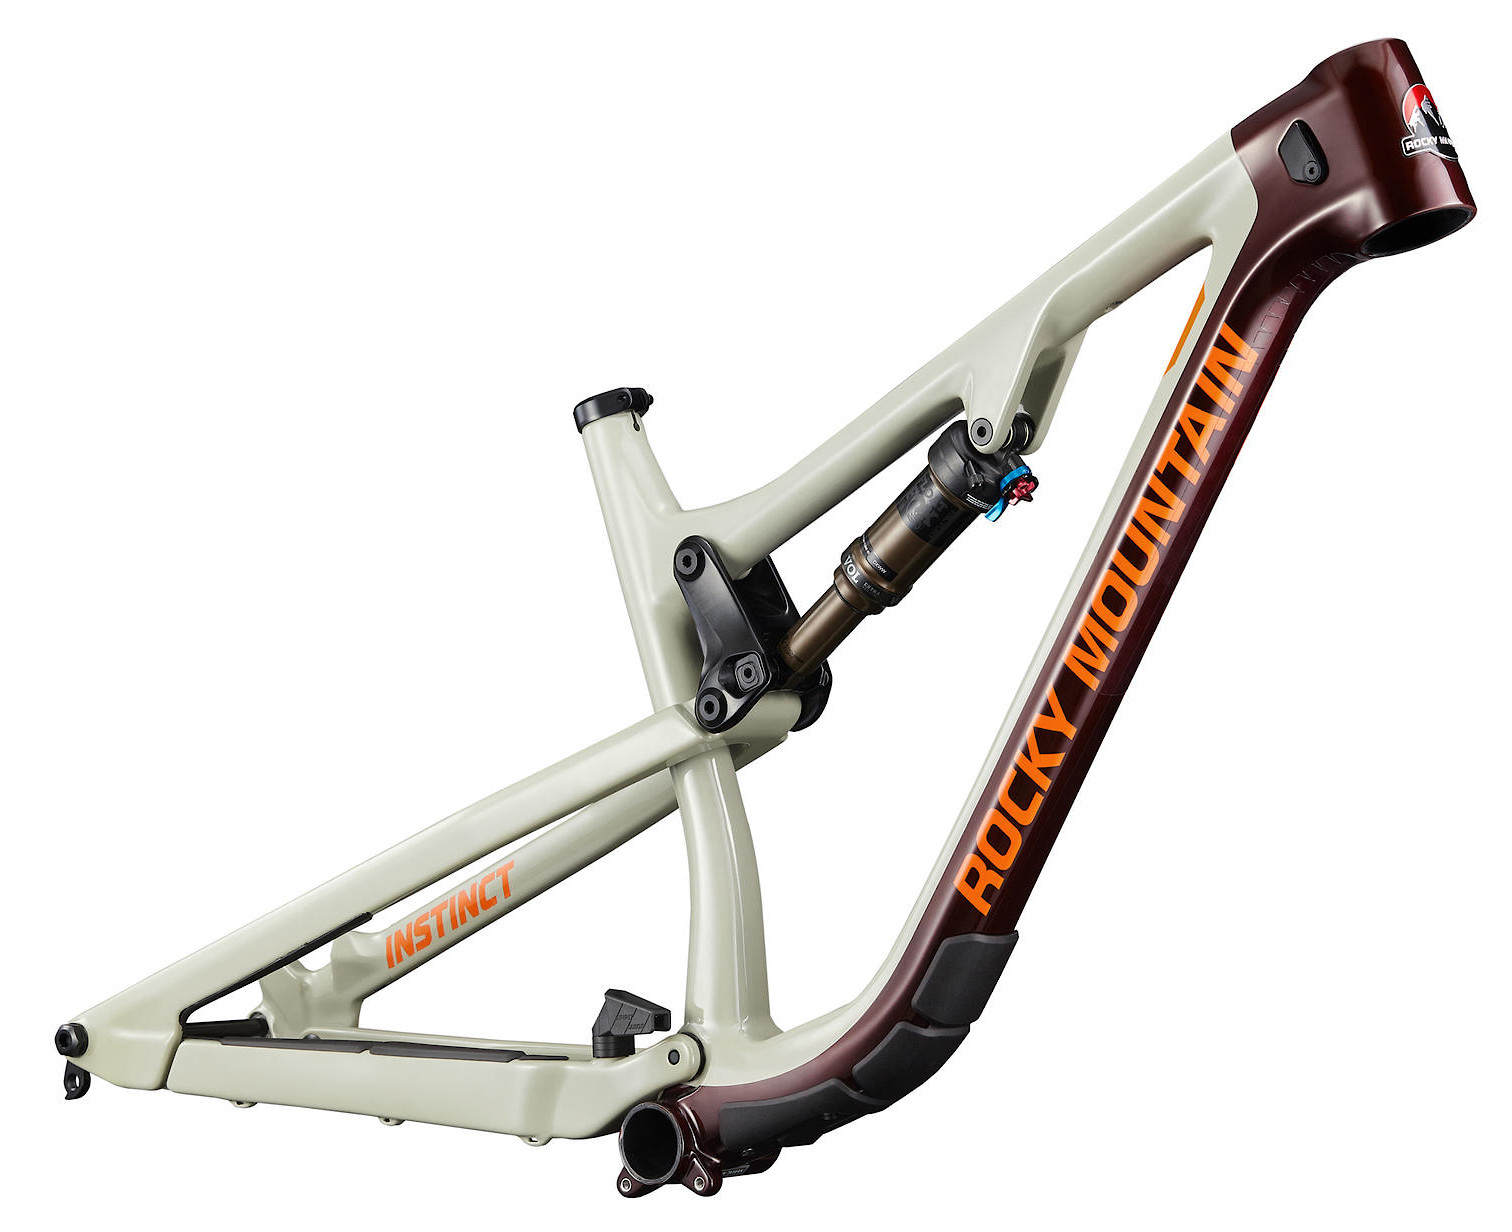 2020 Rocky Mountain Instinct Carbon Frame Beige Dark Red and Orange